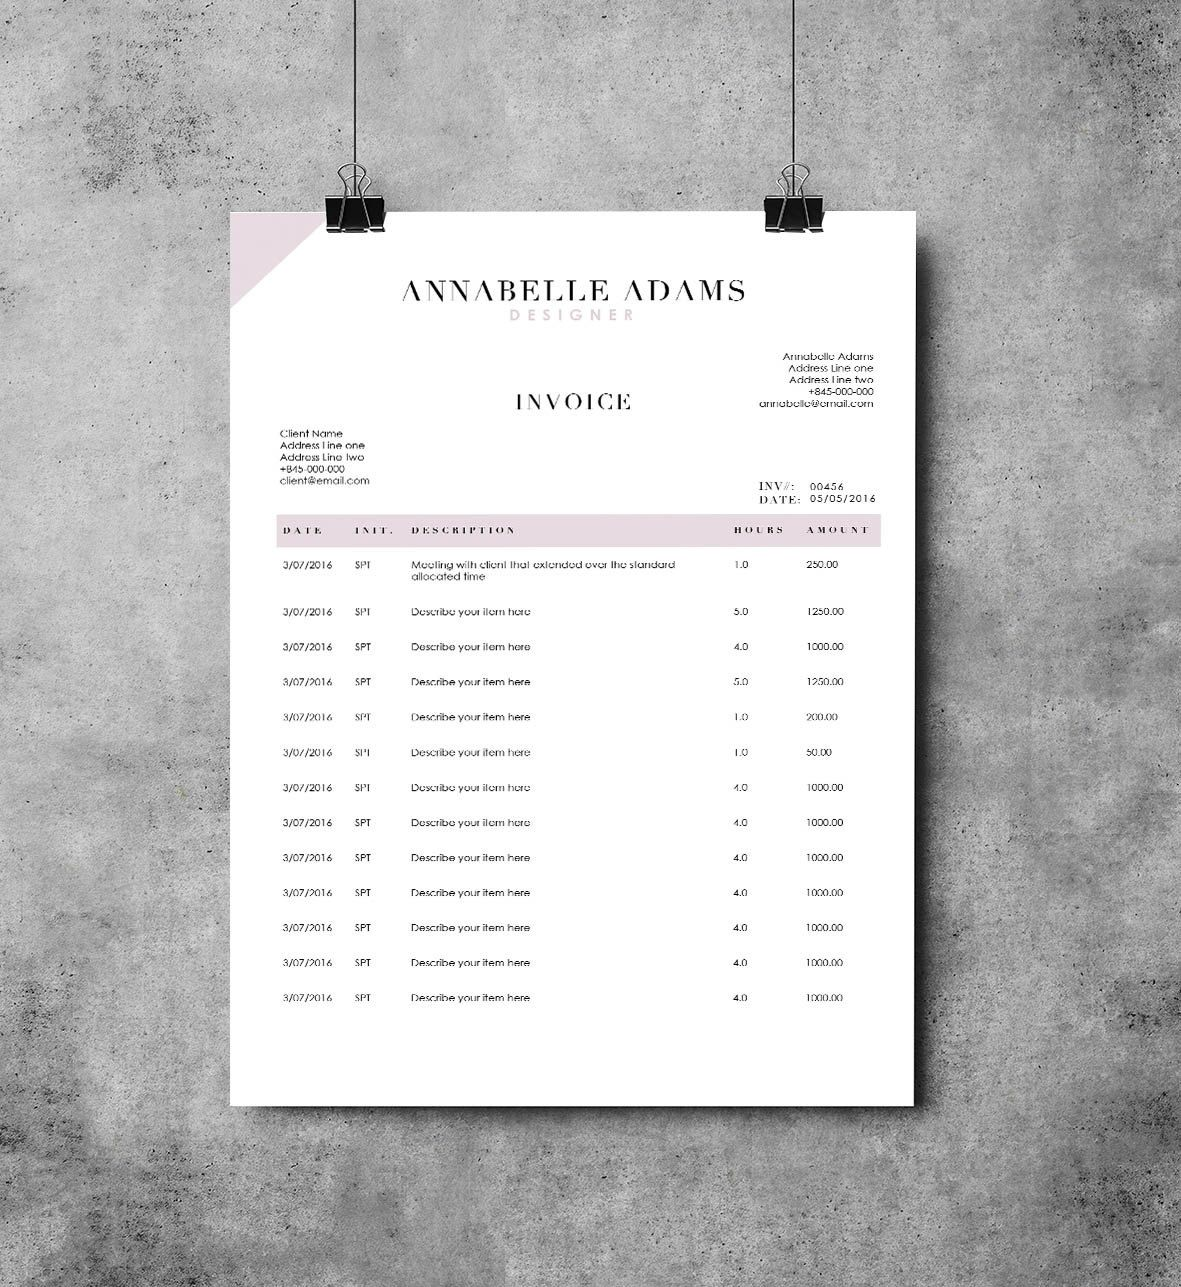 adams 2 page invoice template | receipt template | invoice design, Invoice examples